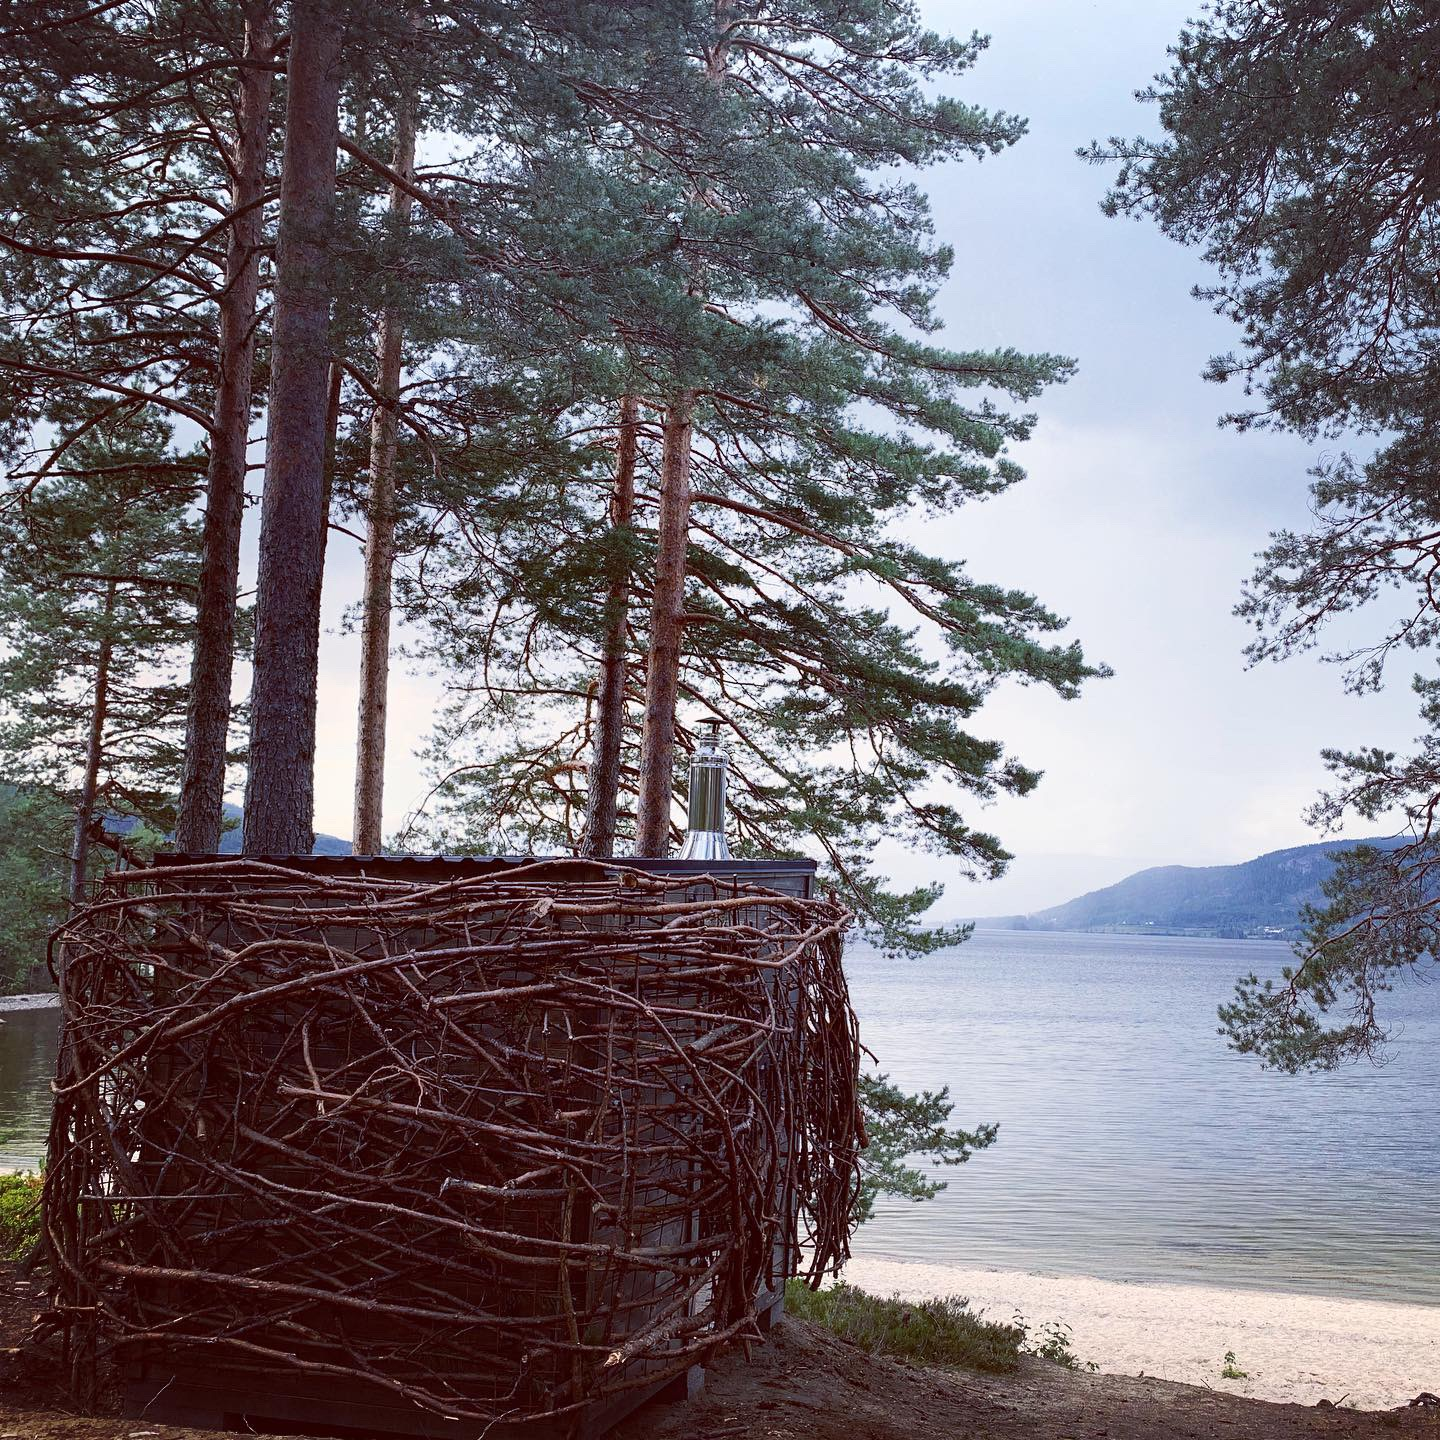 birds nest sauna with beach view